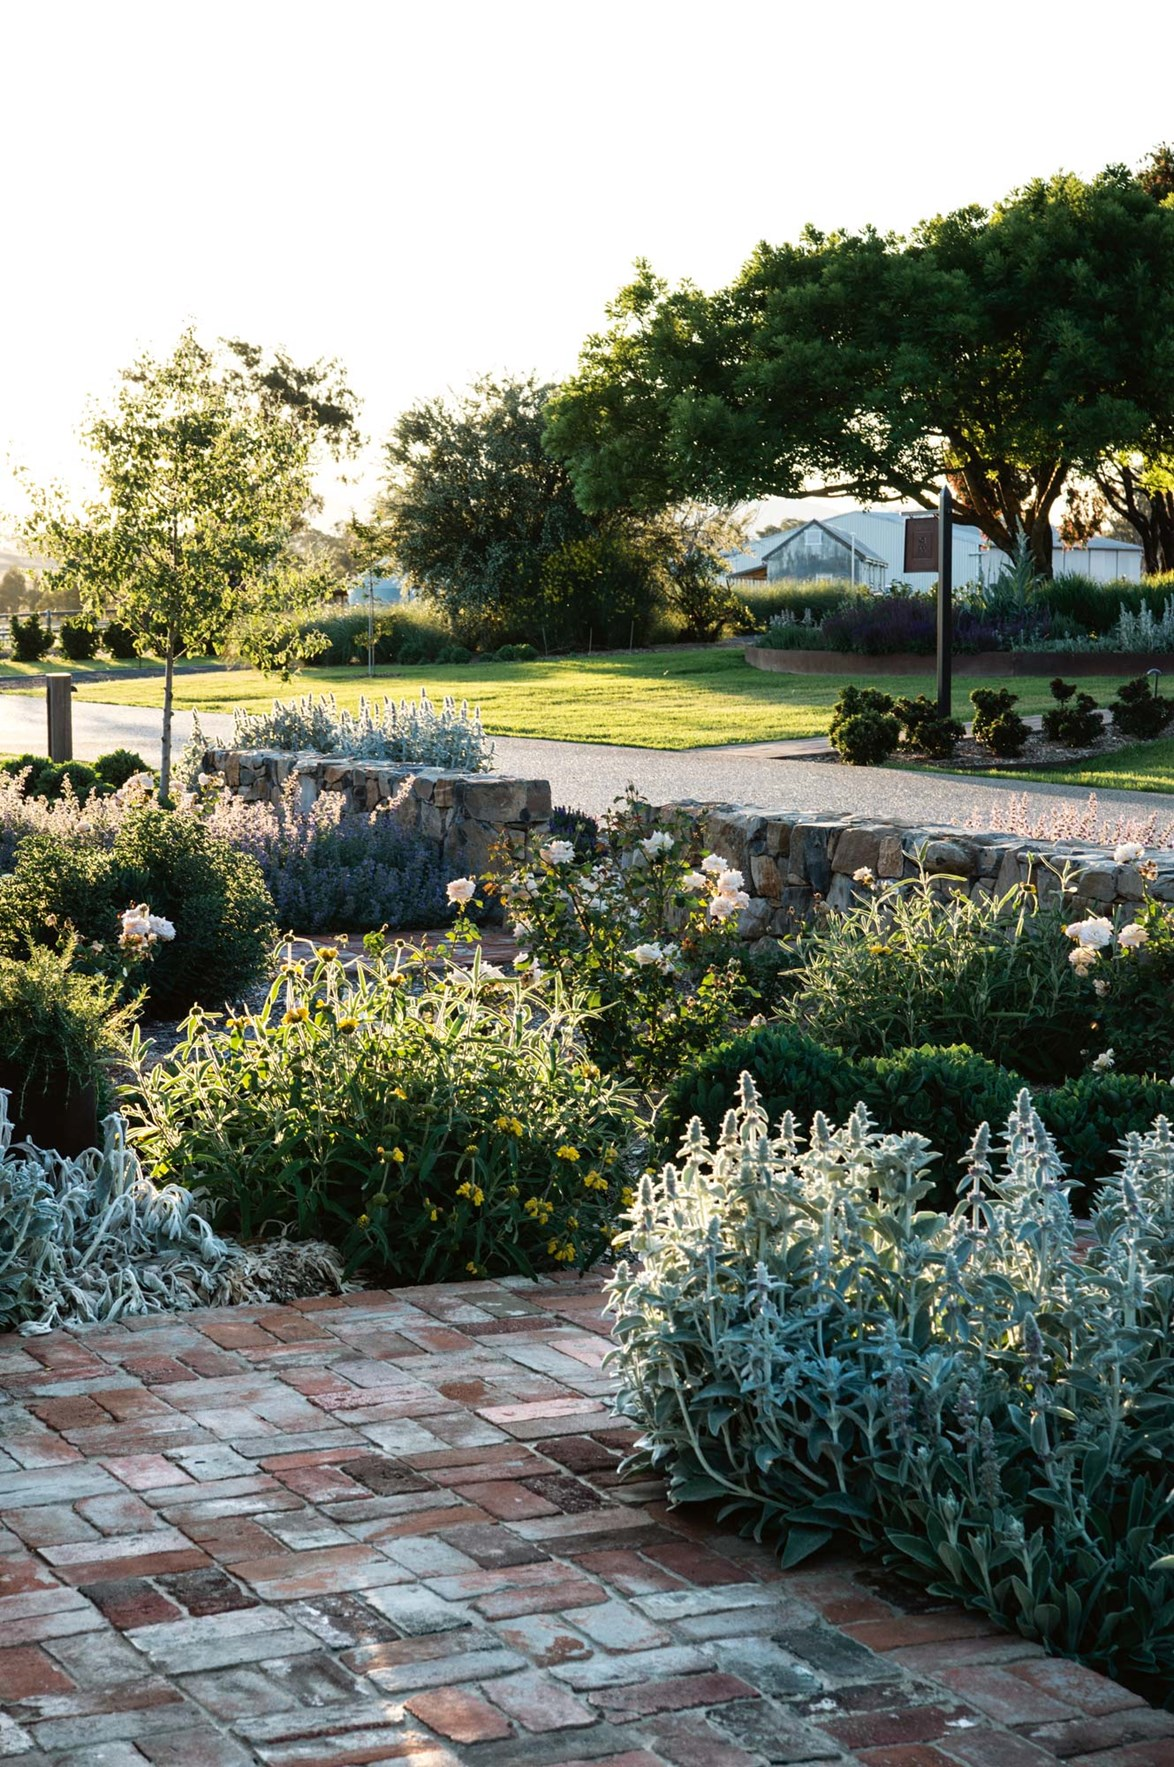 """In 2011, Tony and Karen Heggarty purchased a 5000-hectare station - the site of the abandoned [village of Goonoo Goonoo](https://www.homestolove.com.au/tamworth-garden-with-tiny-village-reimagined-from-local-history-14024